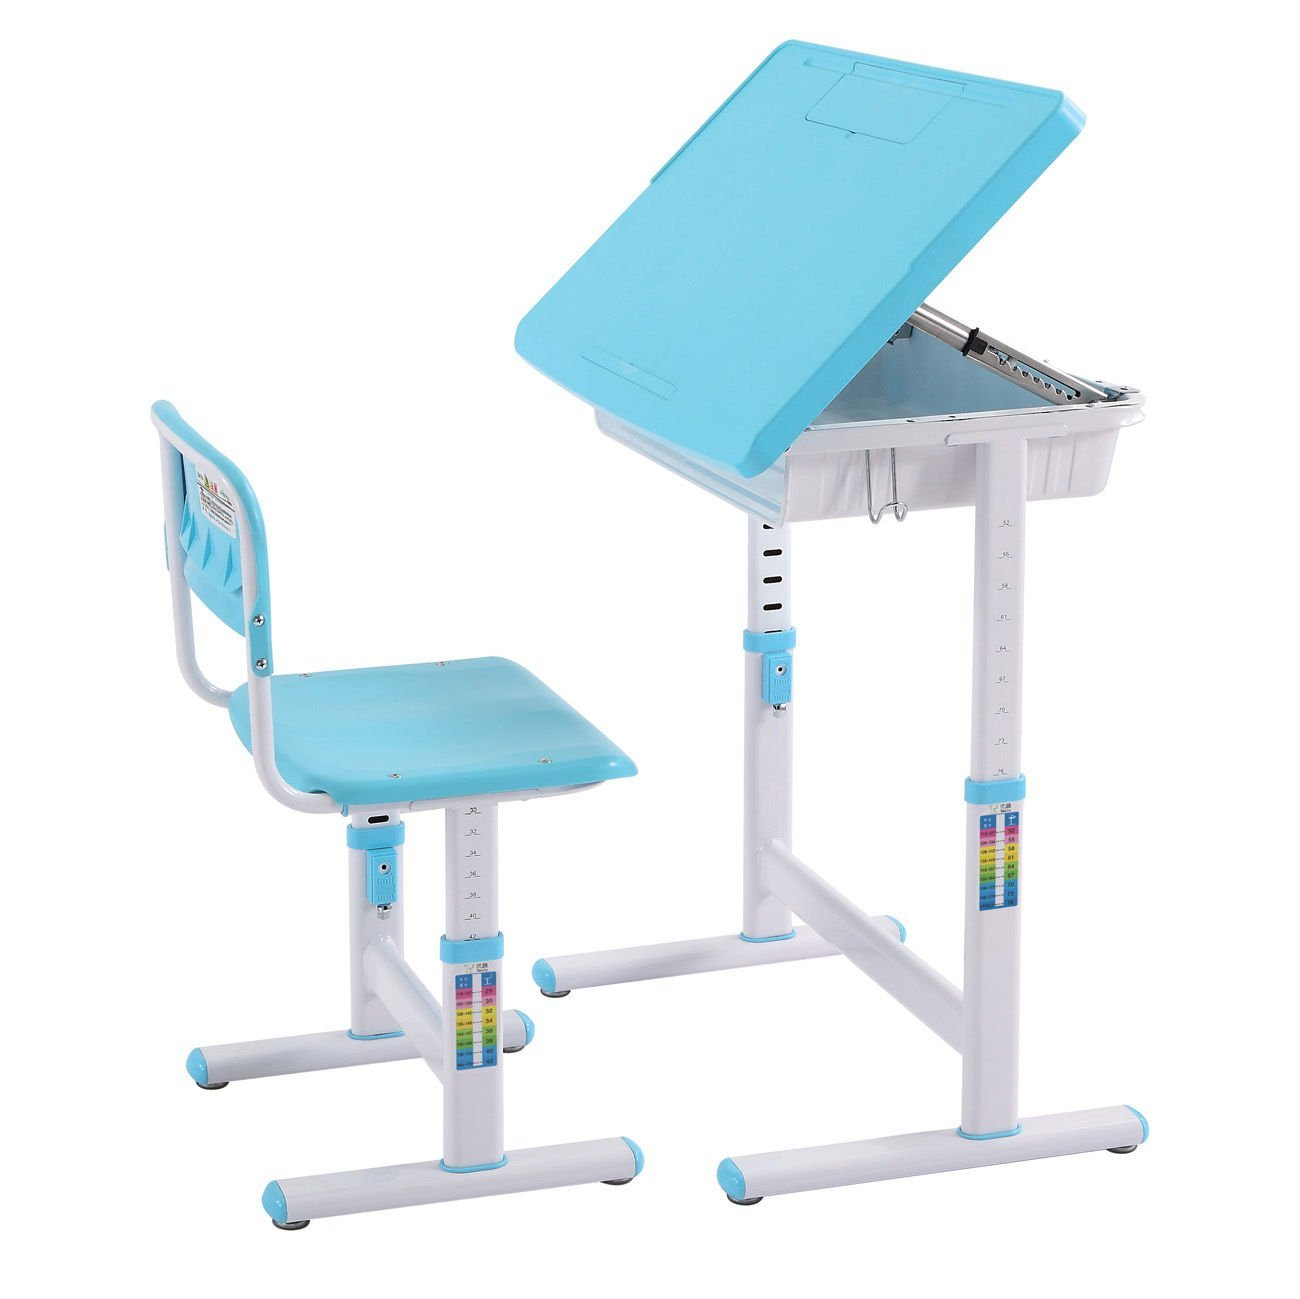 Chende Children Adjustable Study Desk & Chair Kids Interactive Work Station School Desk (Blue)